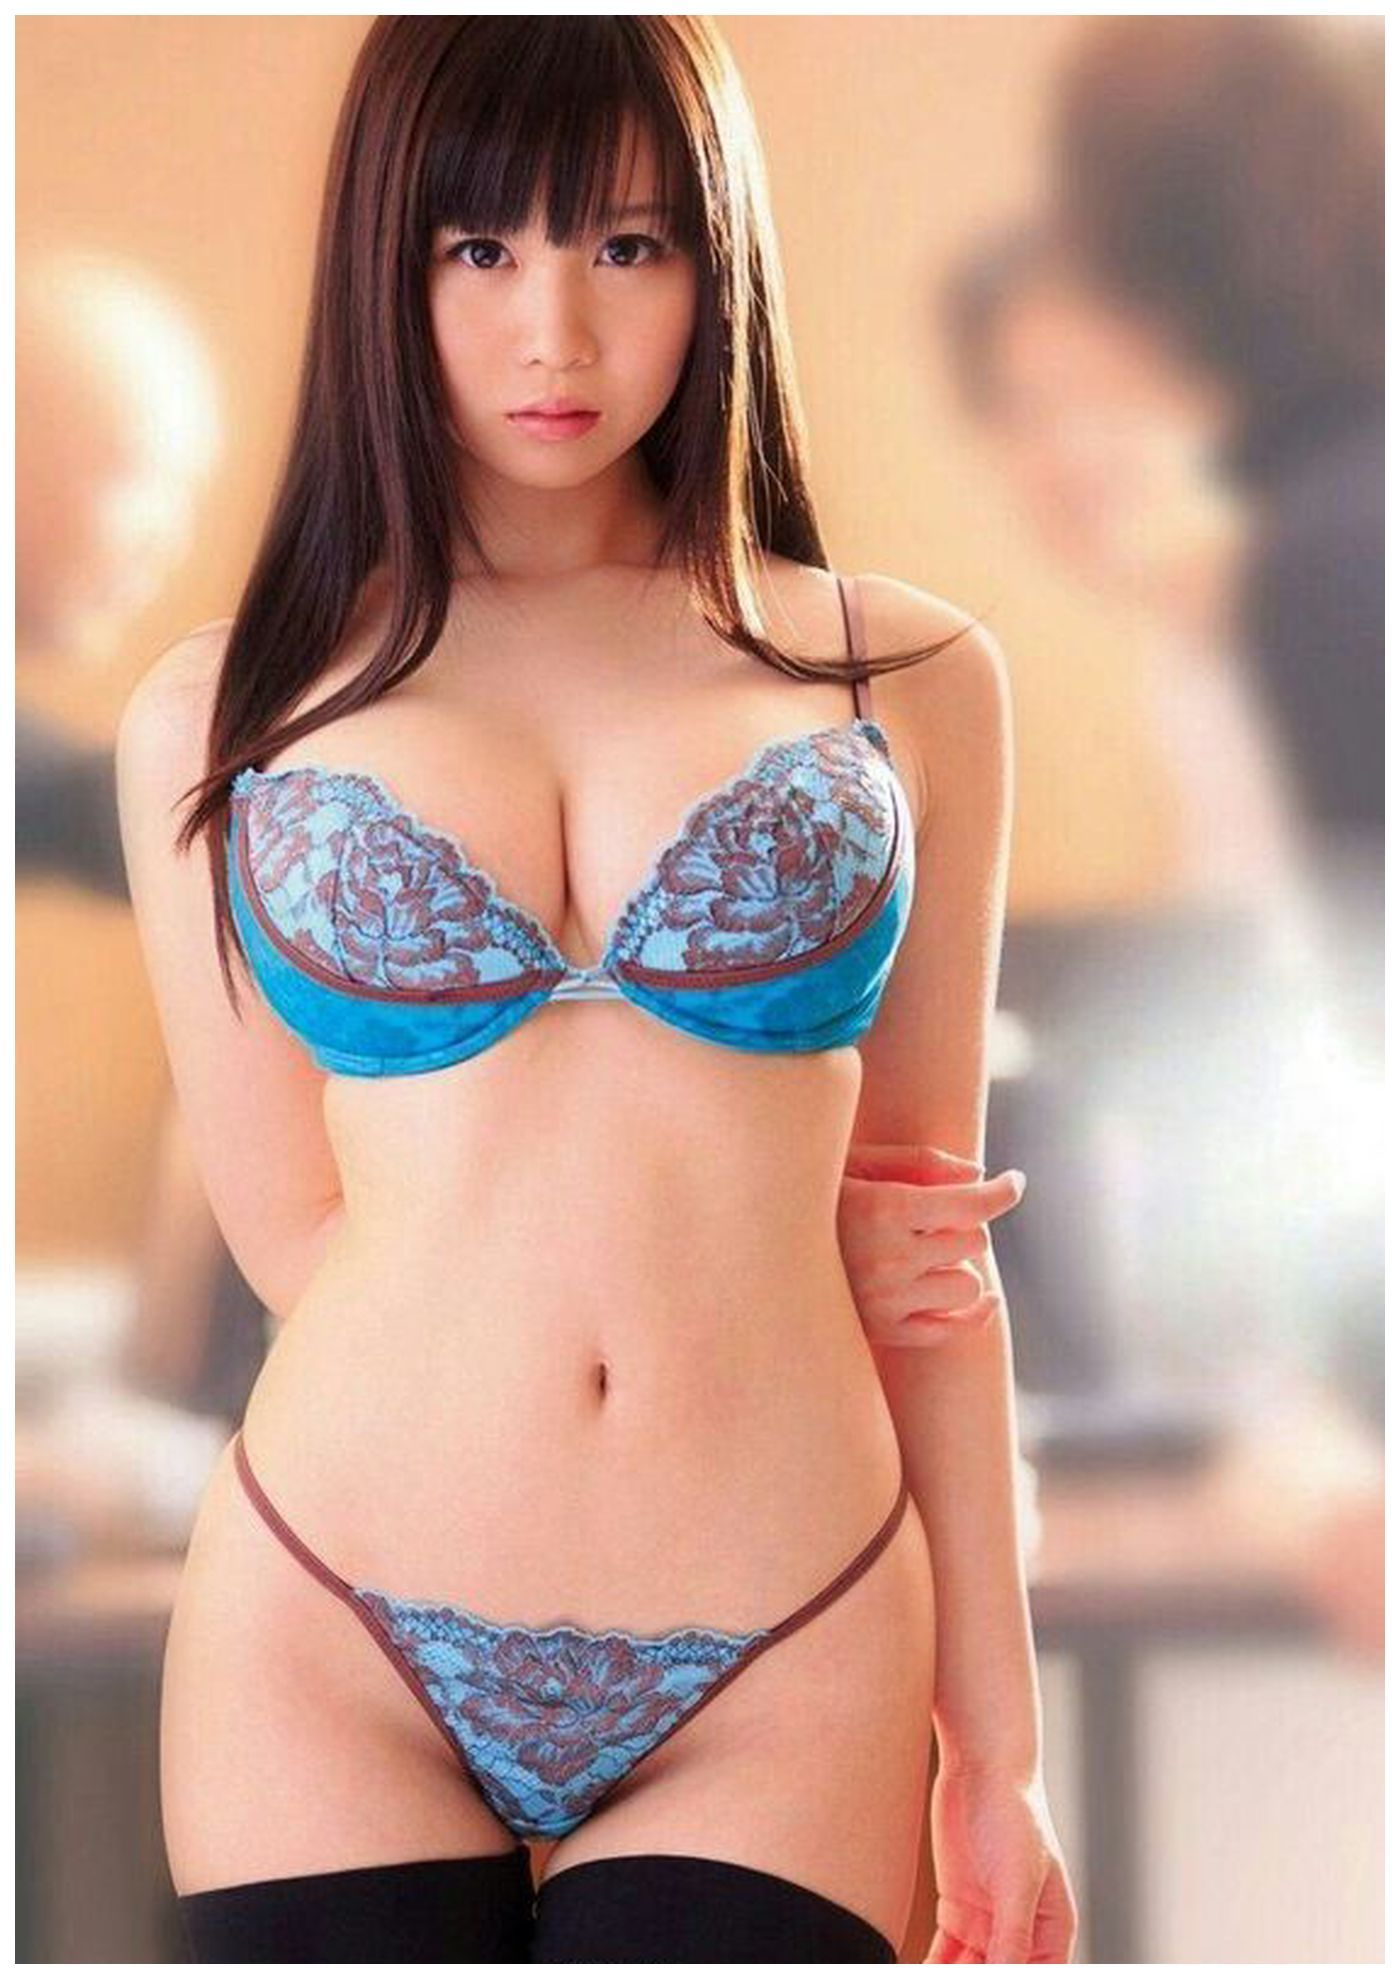 Nathan recommend Beautiful naked chinese female models thumbnails